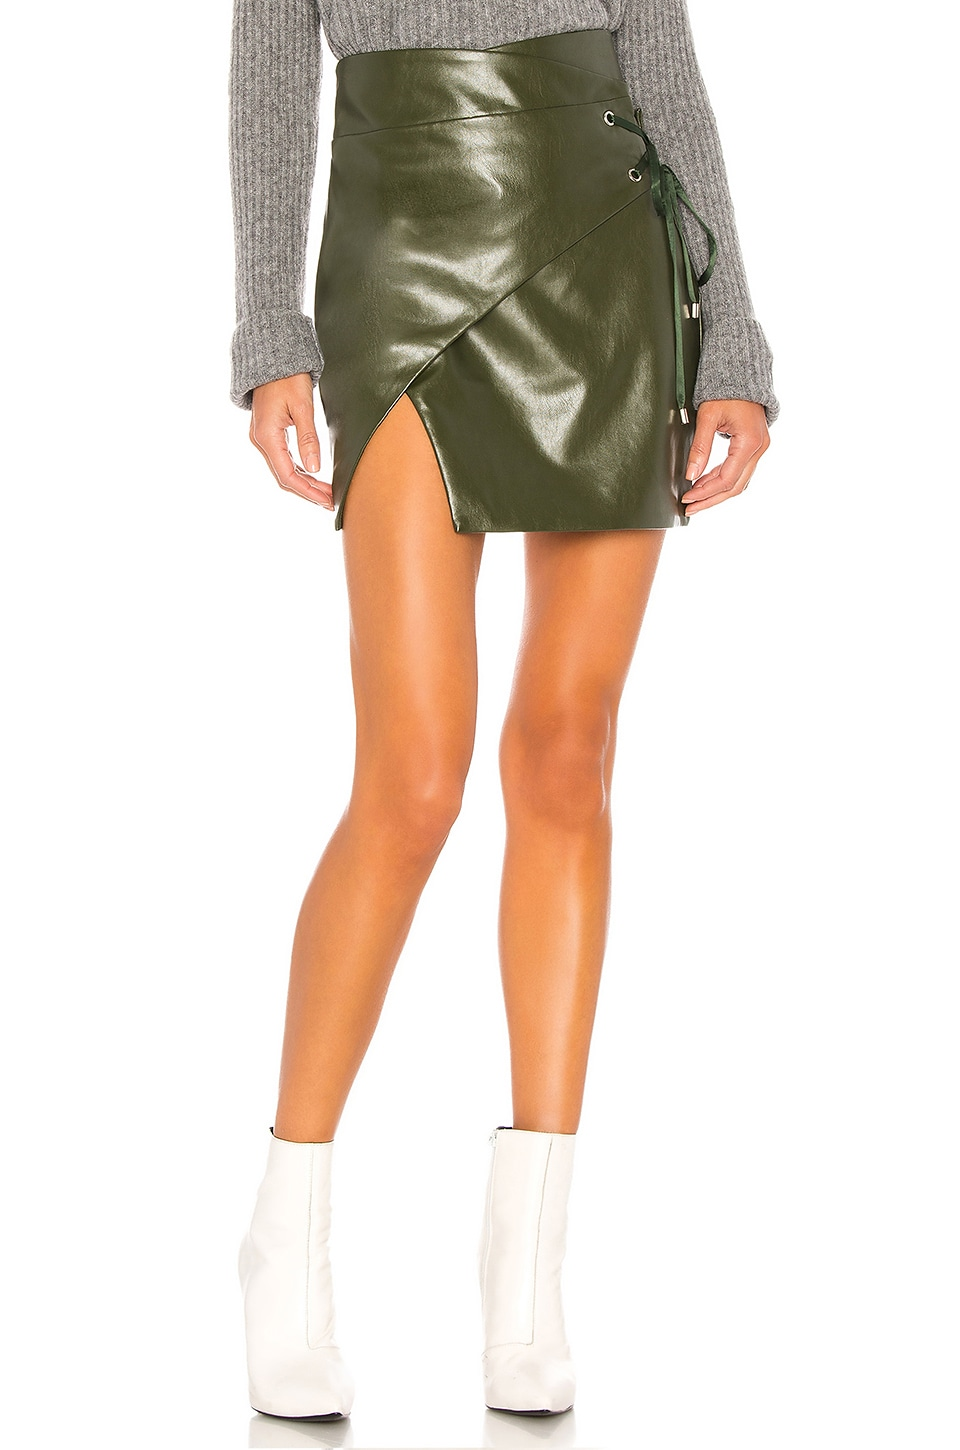 MAJORELLE Hyperion Mini Skirt in Olive Green